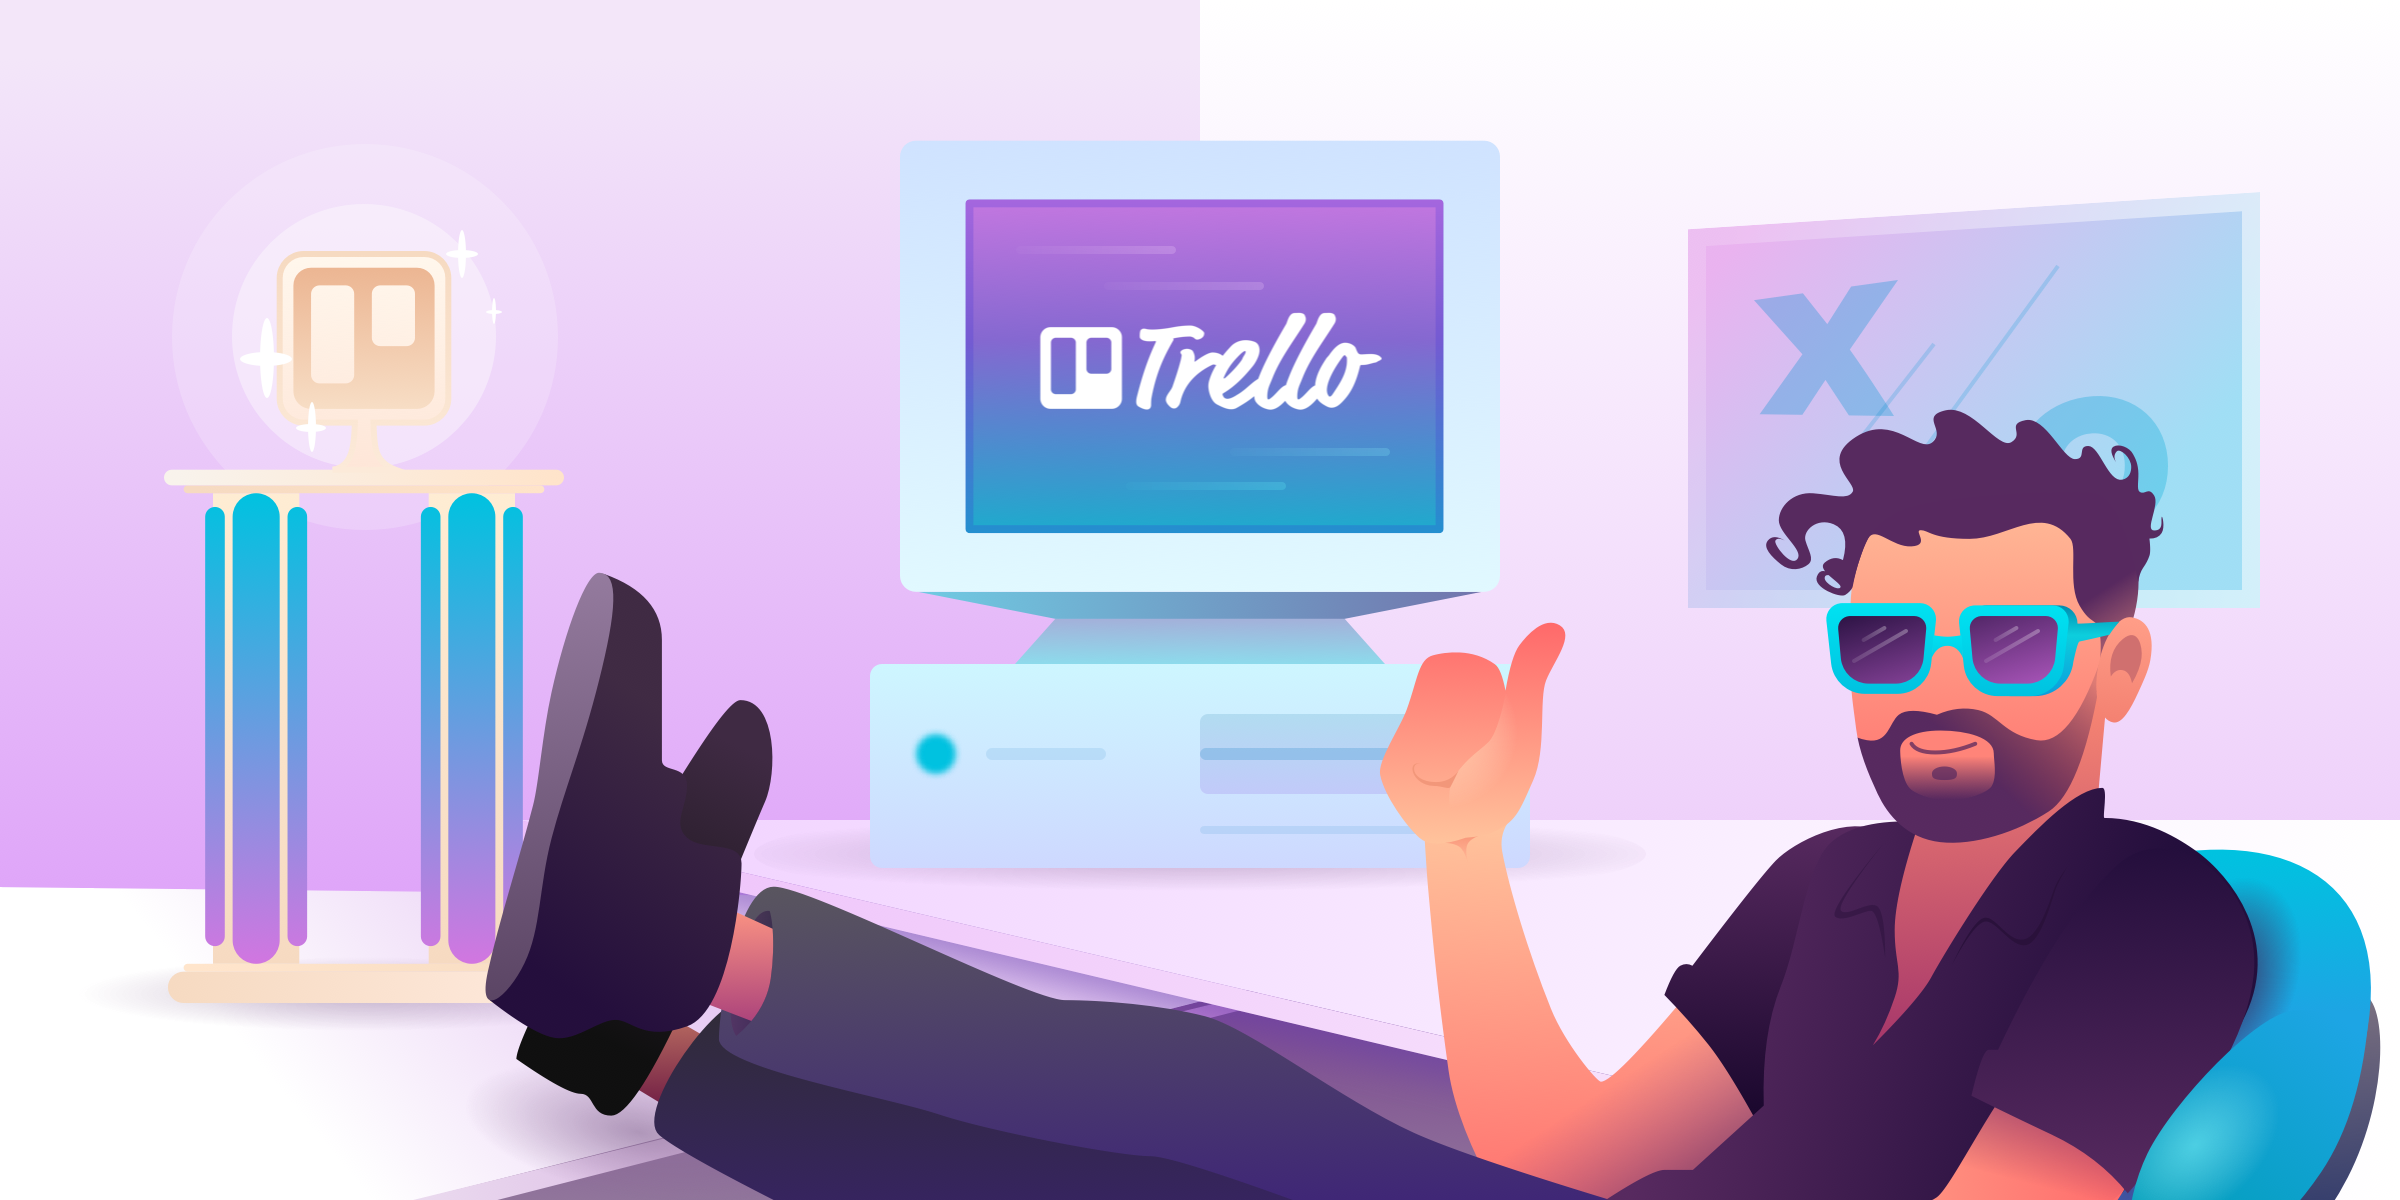 7 Trello Keyboard Shortcuts That Will Make You Swoon